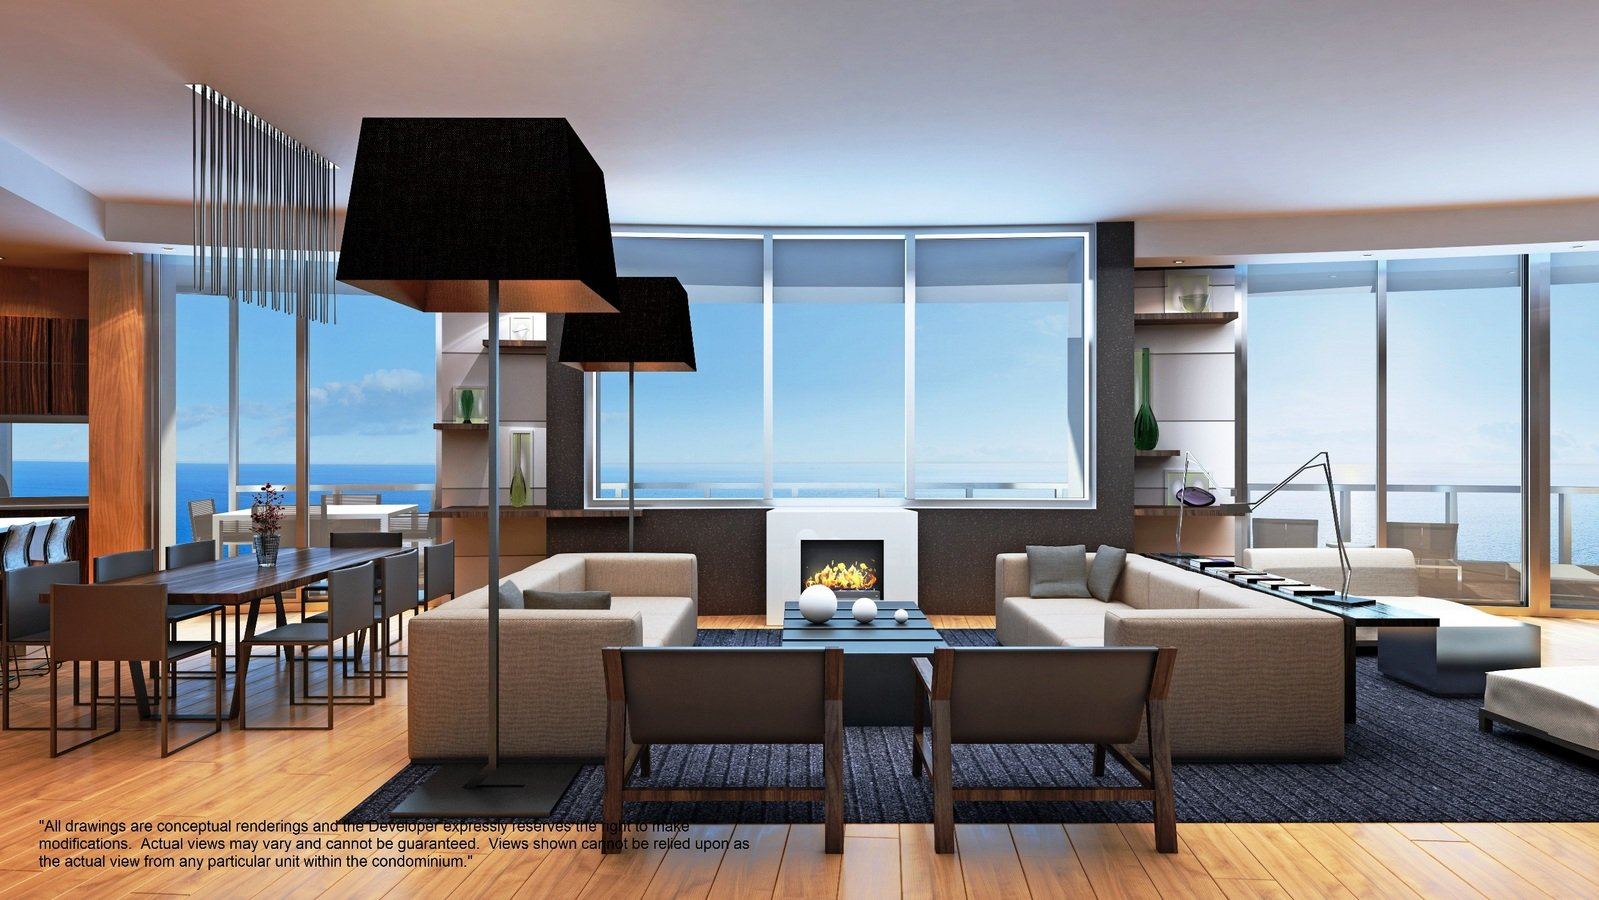 porsche design tower miami breaks ground with 2016 move in dates planned picture 529211. Black Bedroom Furniture Sets. Home Design Ideas